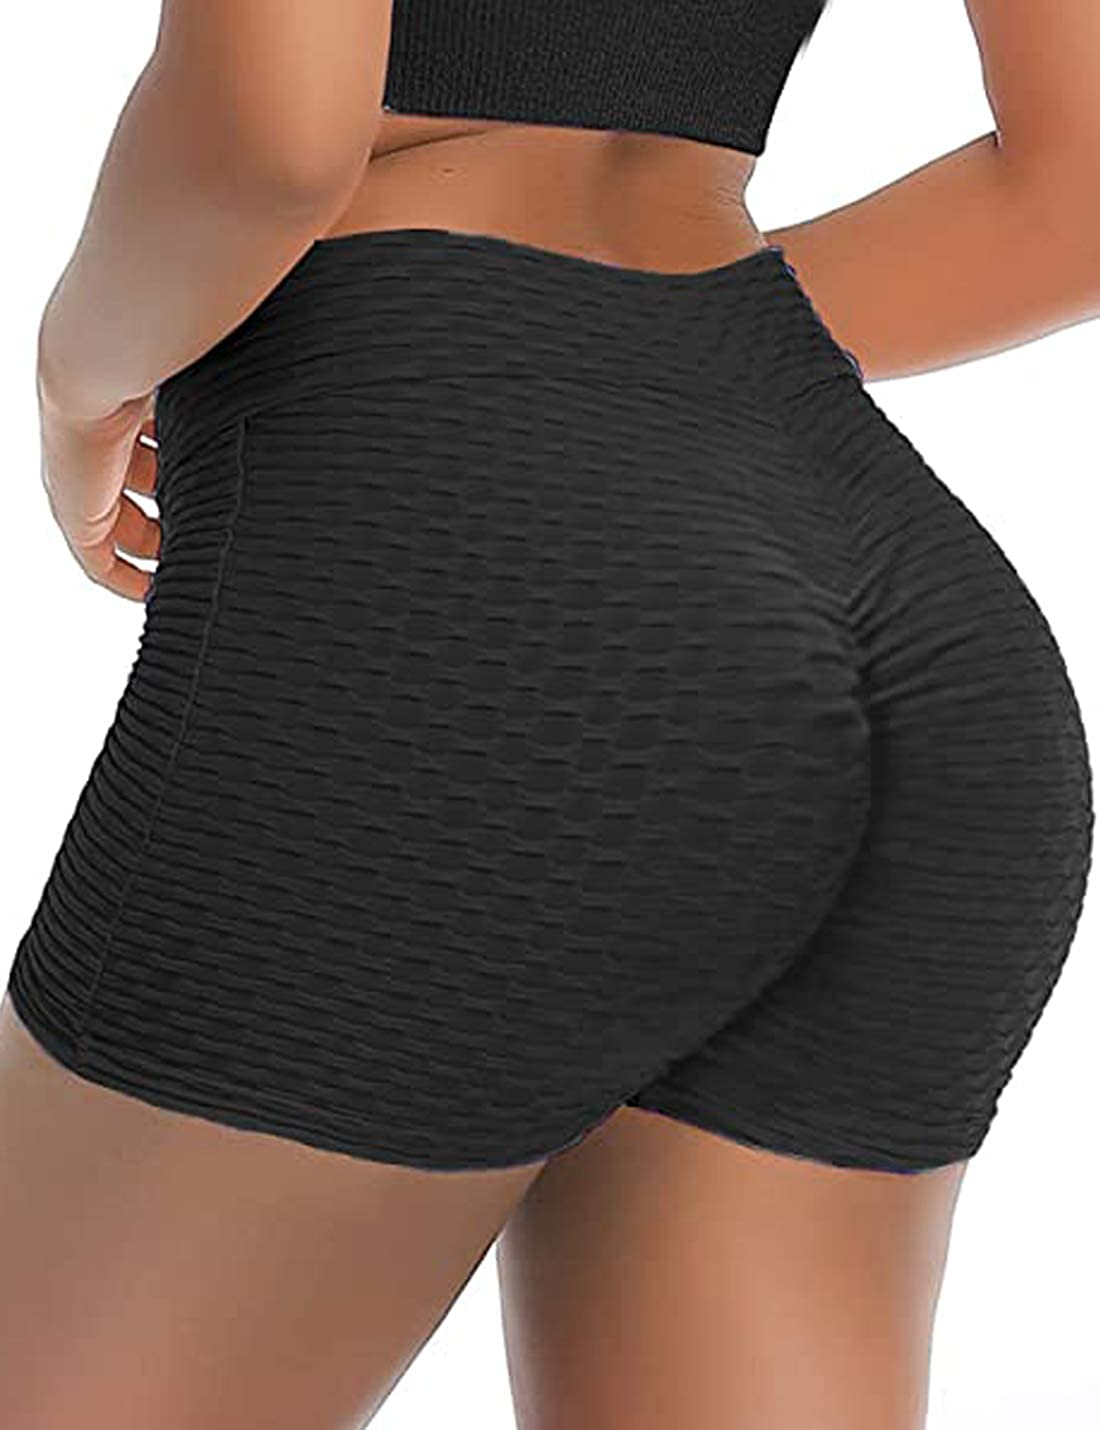 Japan Maker New Lviefent Womens High Waisted Yoga Hip Shorts San Diego Mall Lifting Compression